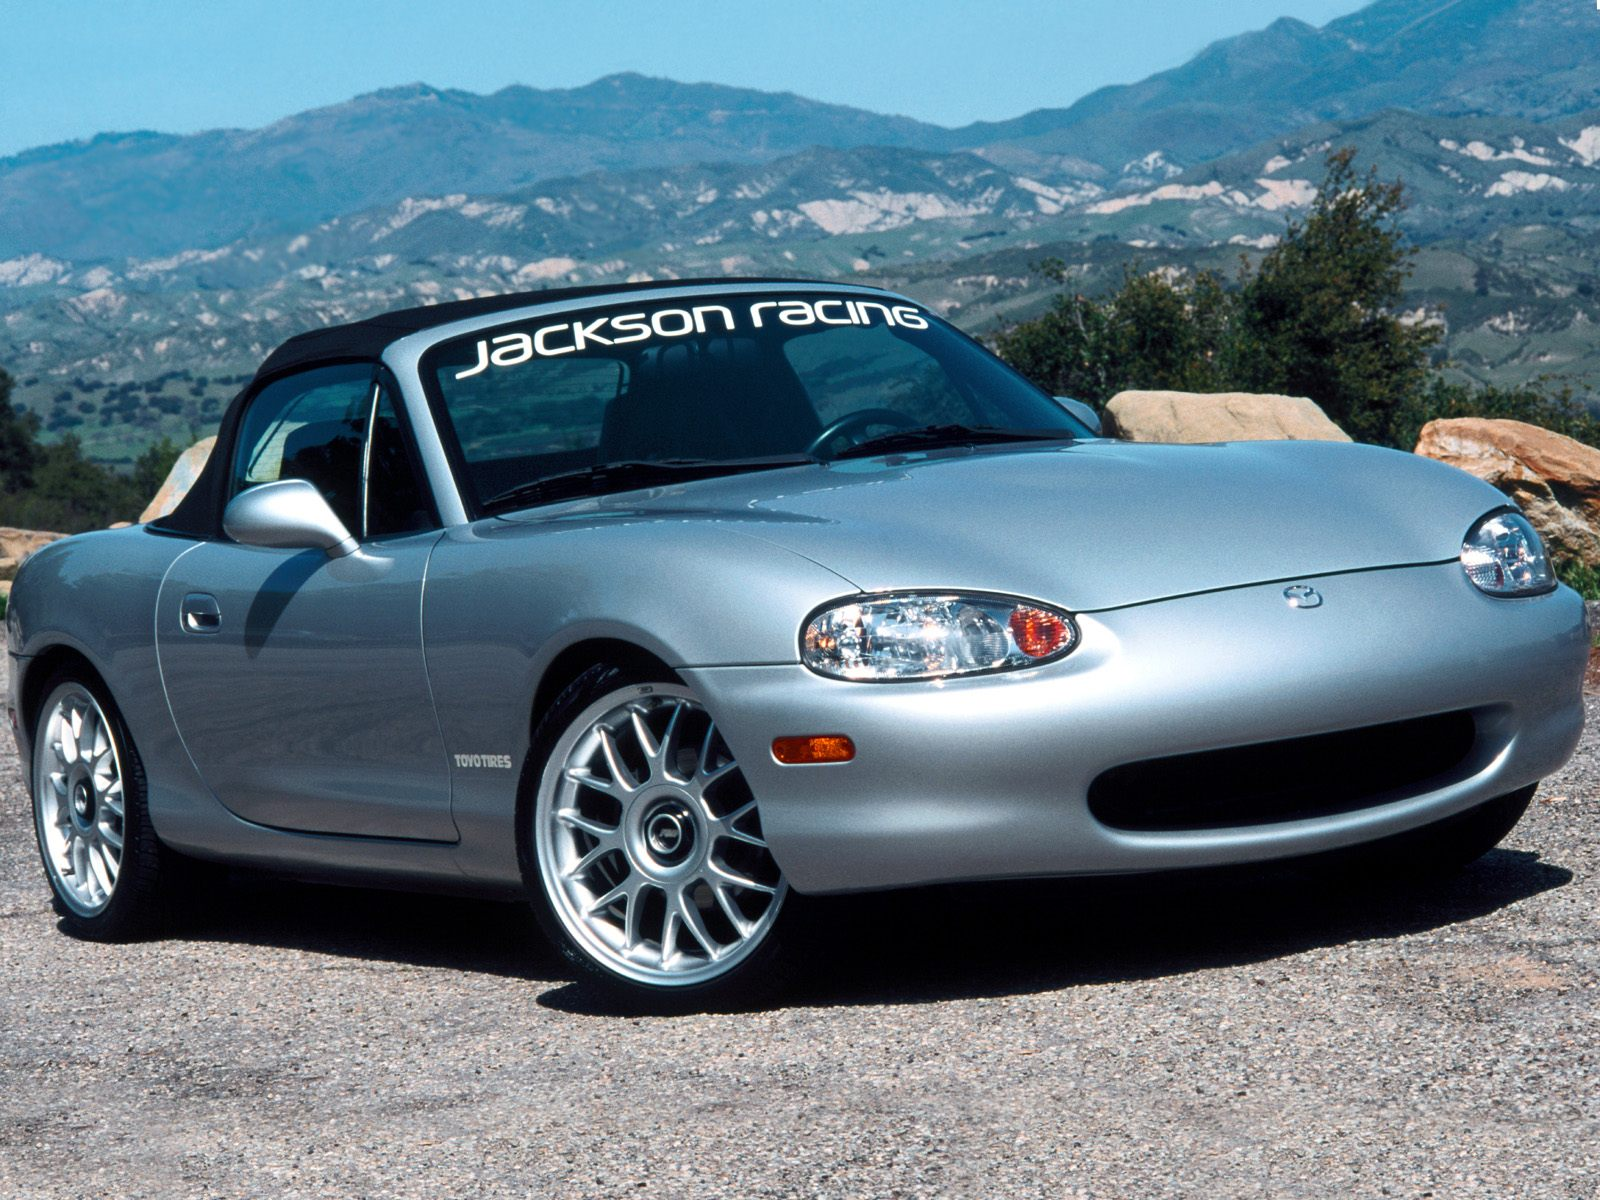 small resolution of repair manual mazda miata 1997 wiring diagram when trying to locate a component in a wiring diagram and you don t know the specific system where it is